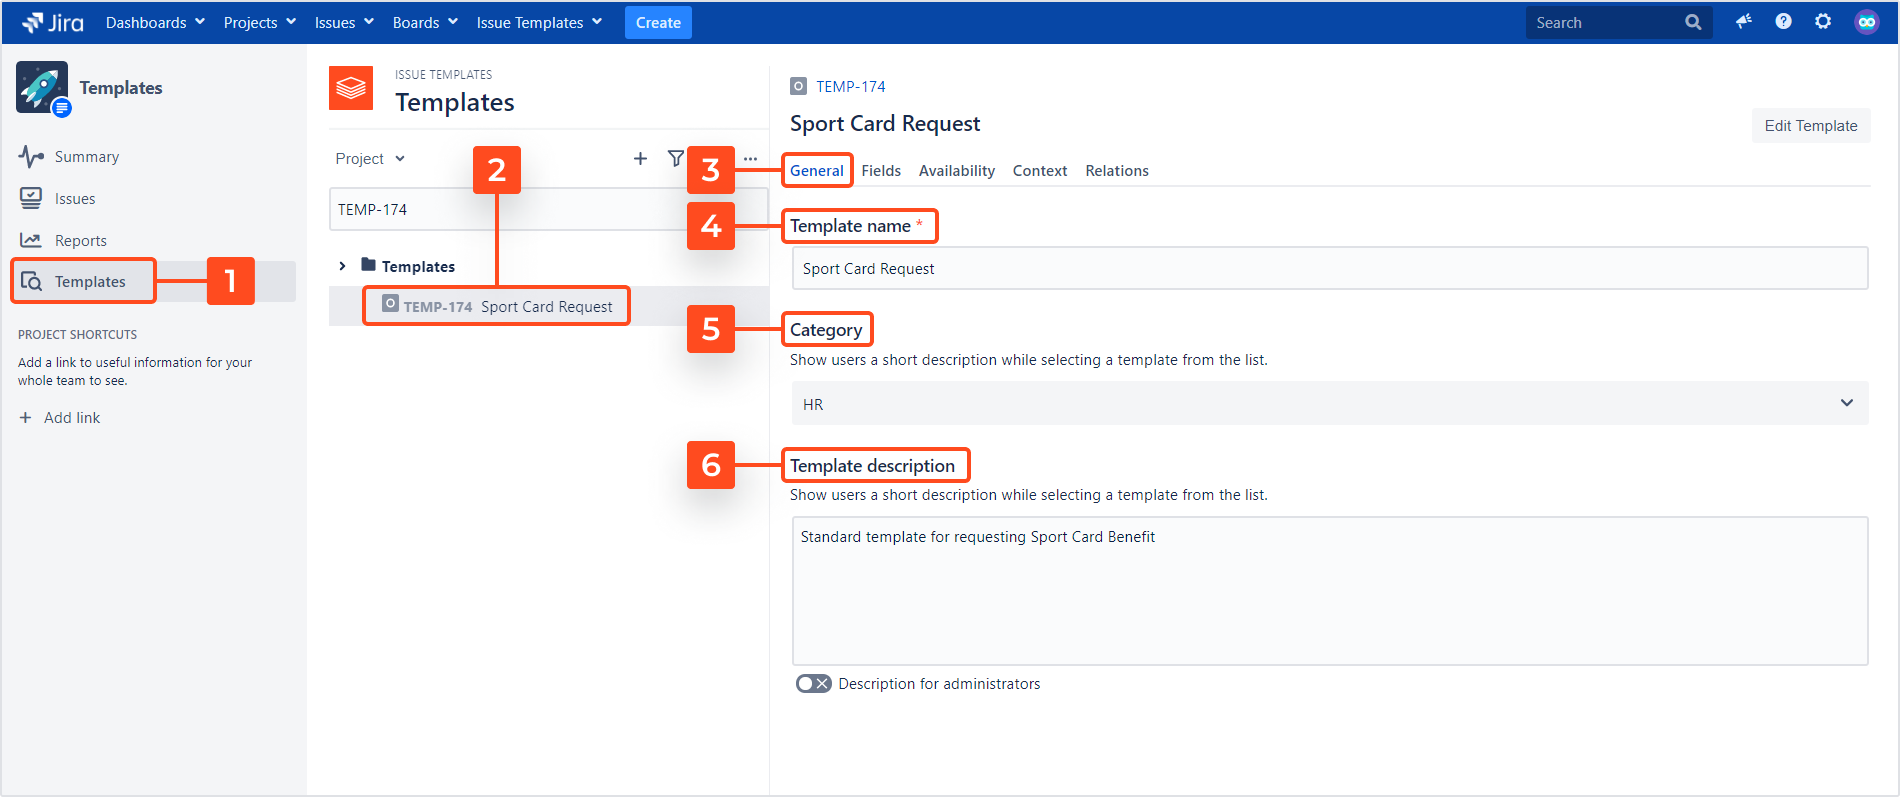 Issue Templates for Jira - Manage Template Details